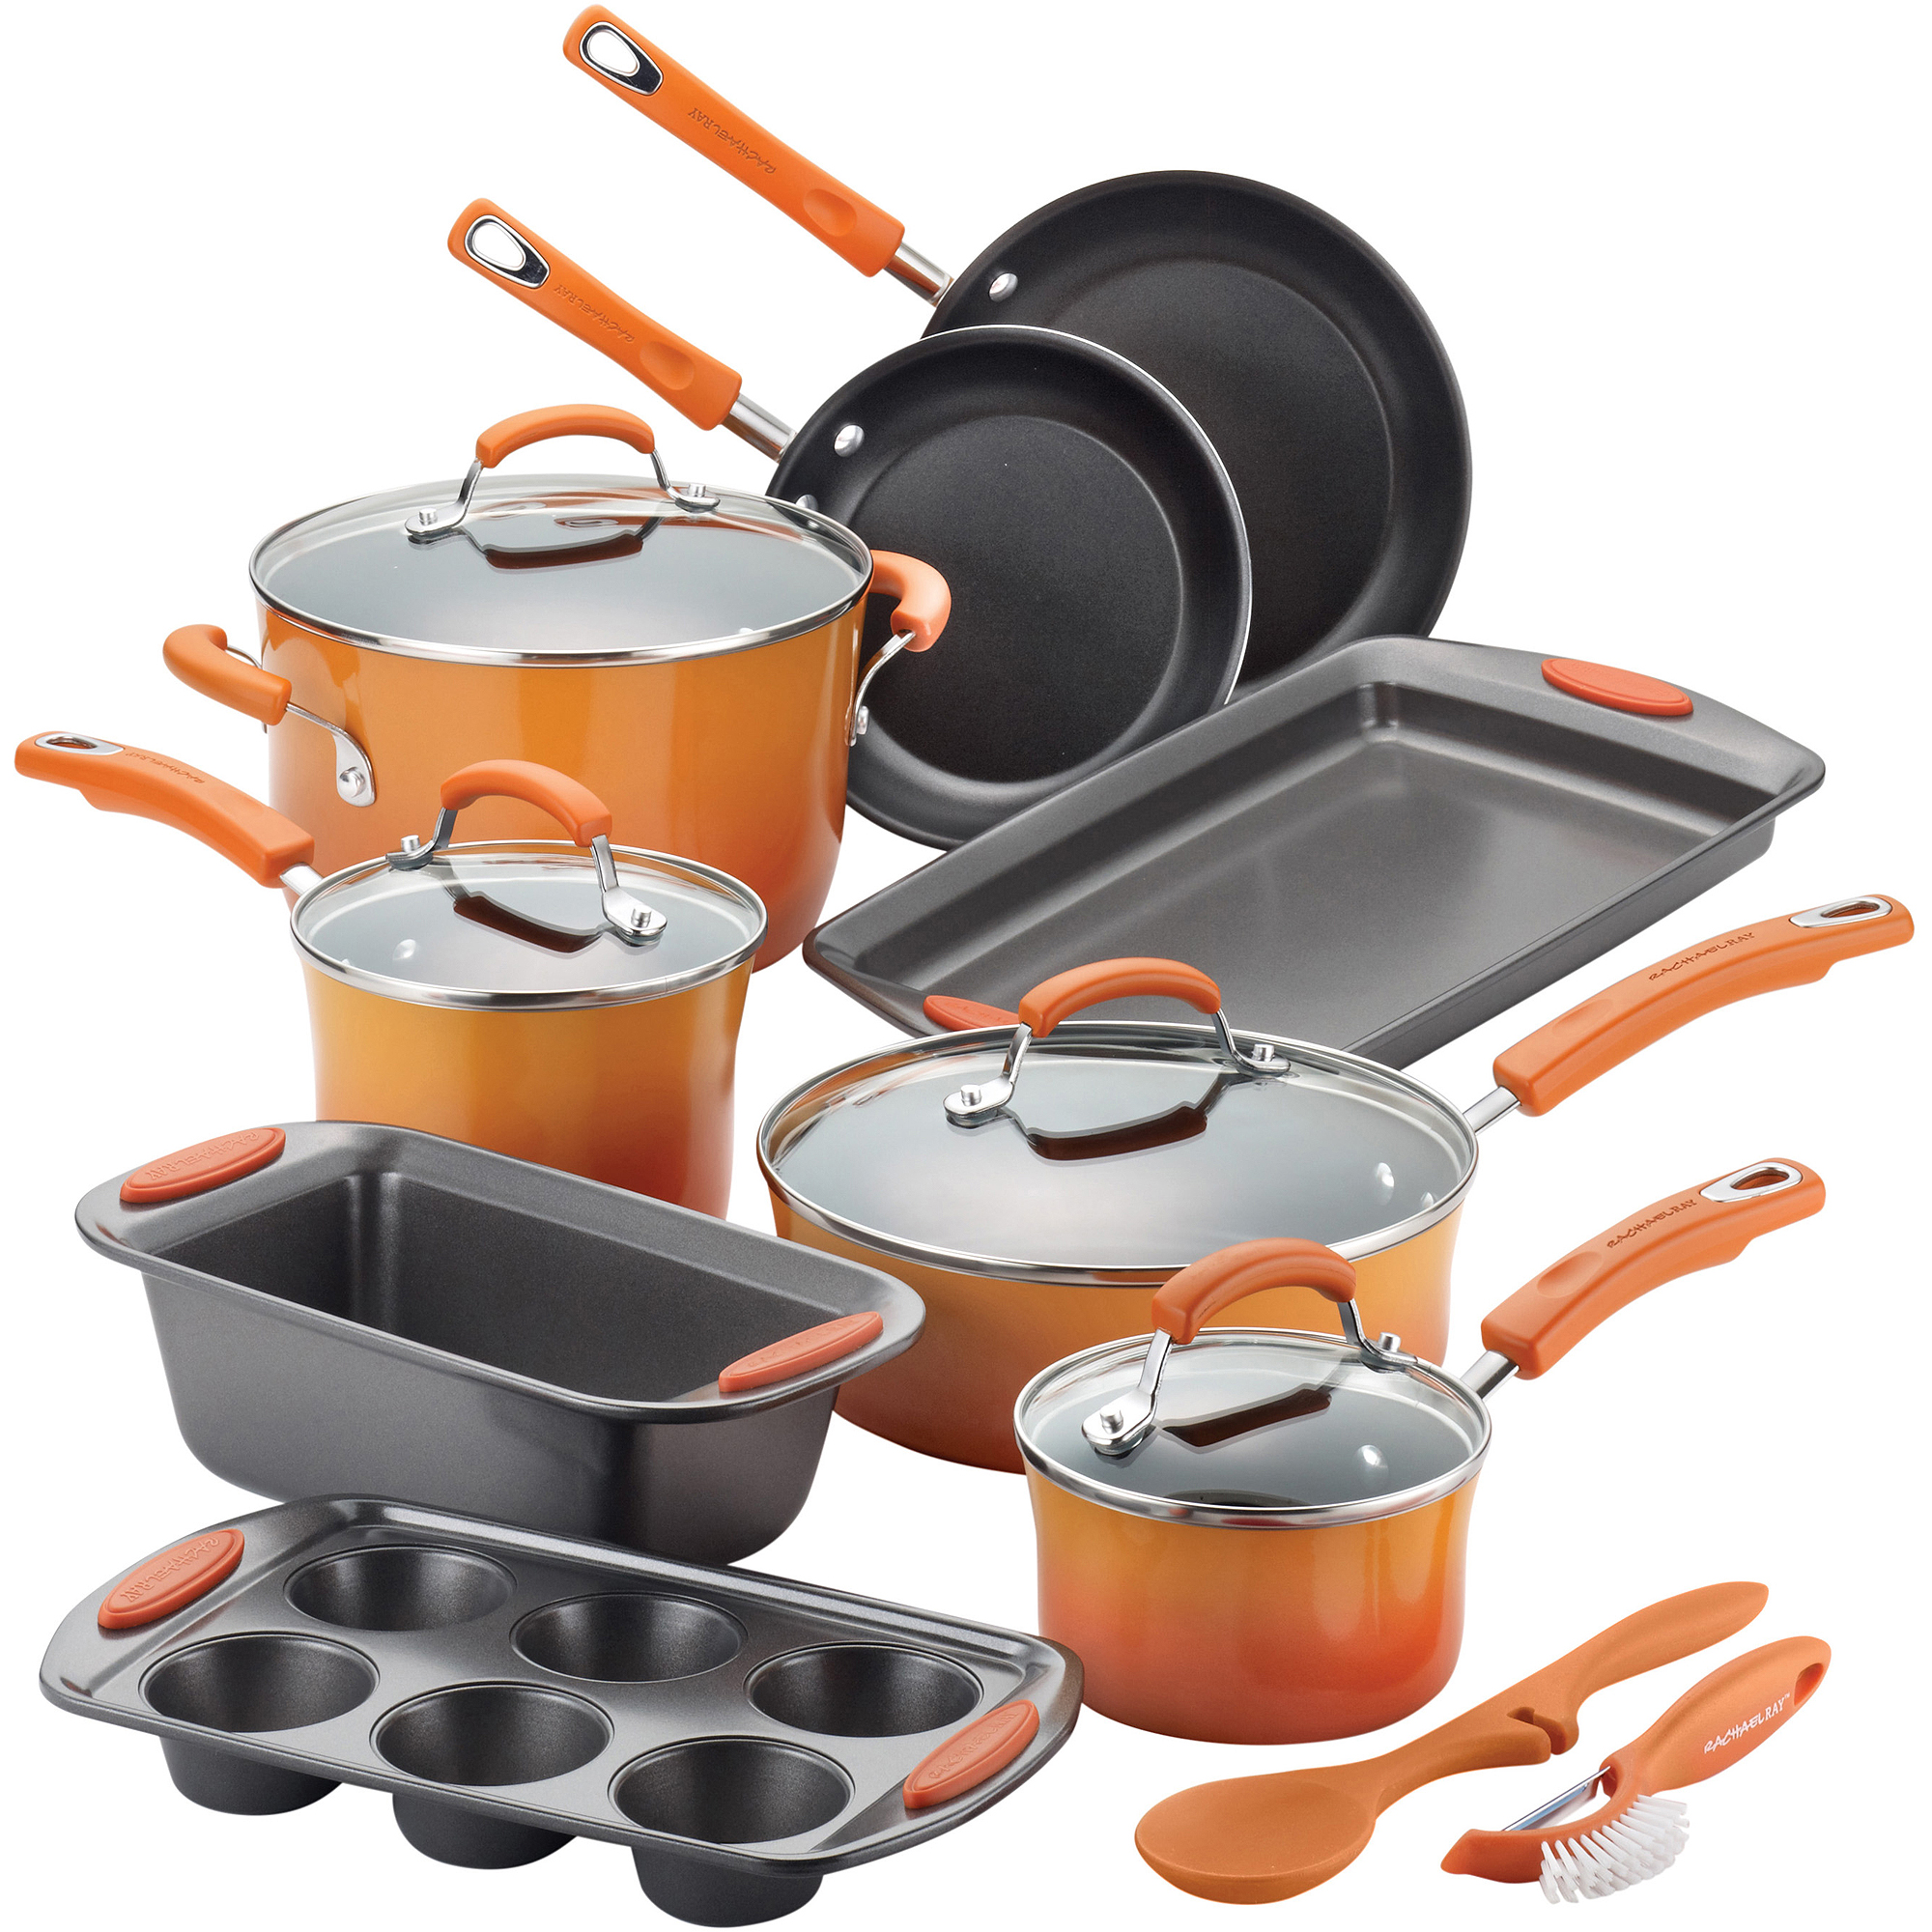 rachael ray 15-piece hard enamel non-stick cookware set - walmart